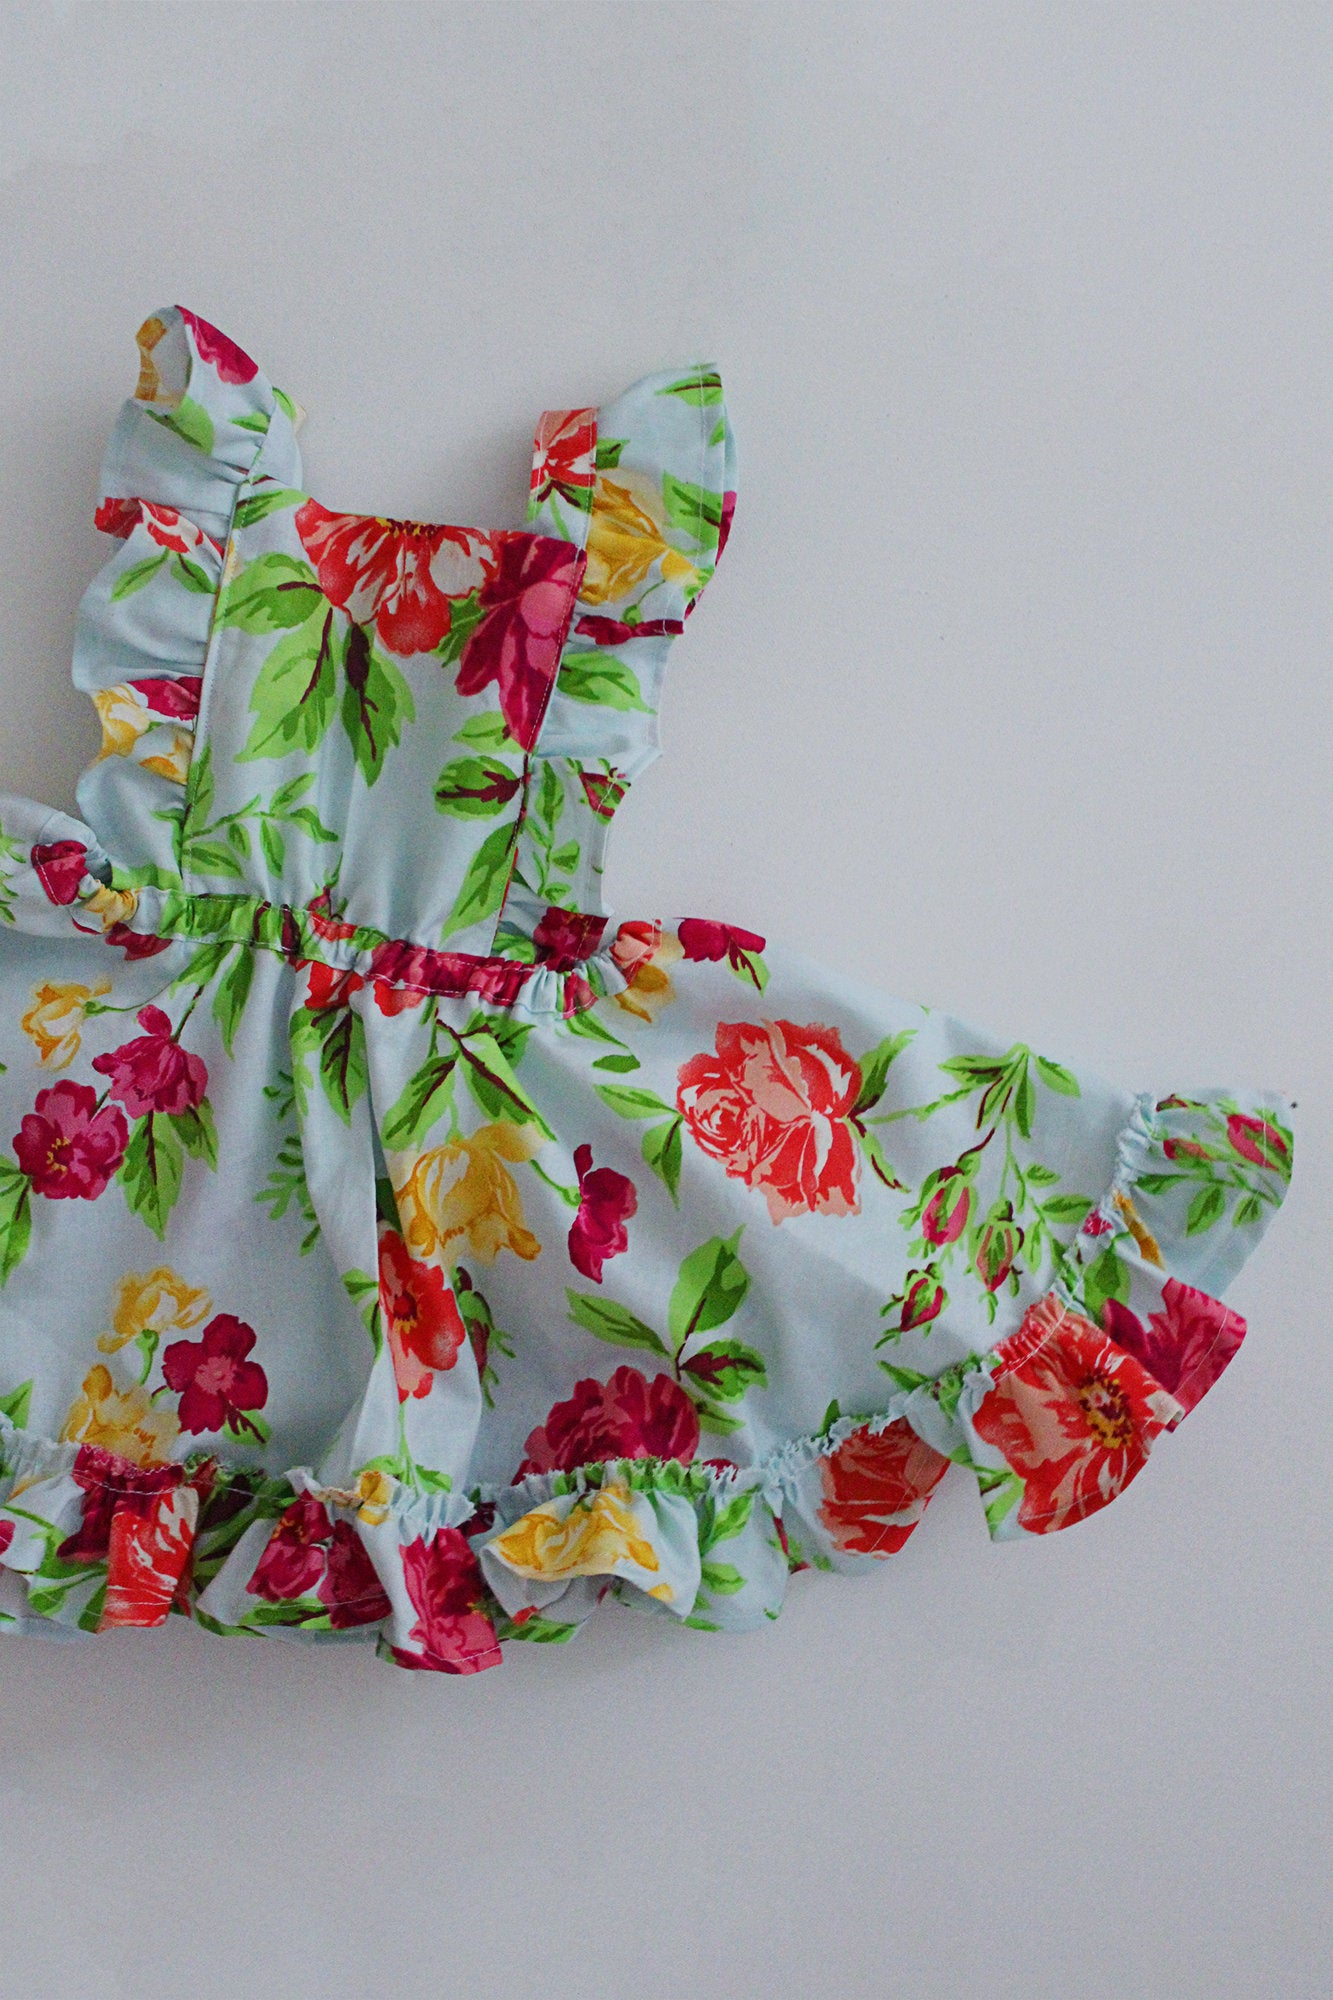 baby girl clothes, baby girl dresses, baby girl pinafore dress, girl boho dresses, floral girl dresses, vintage girl dress